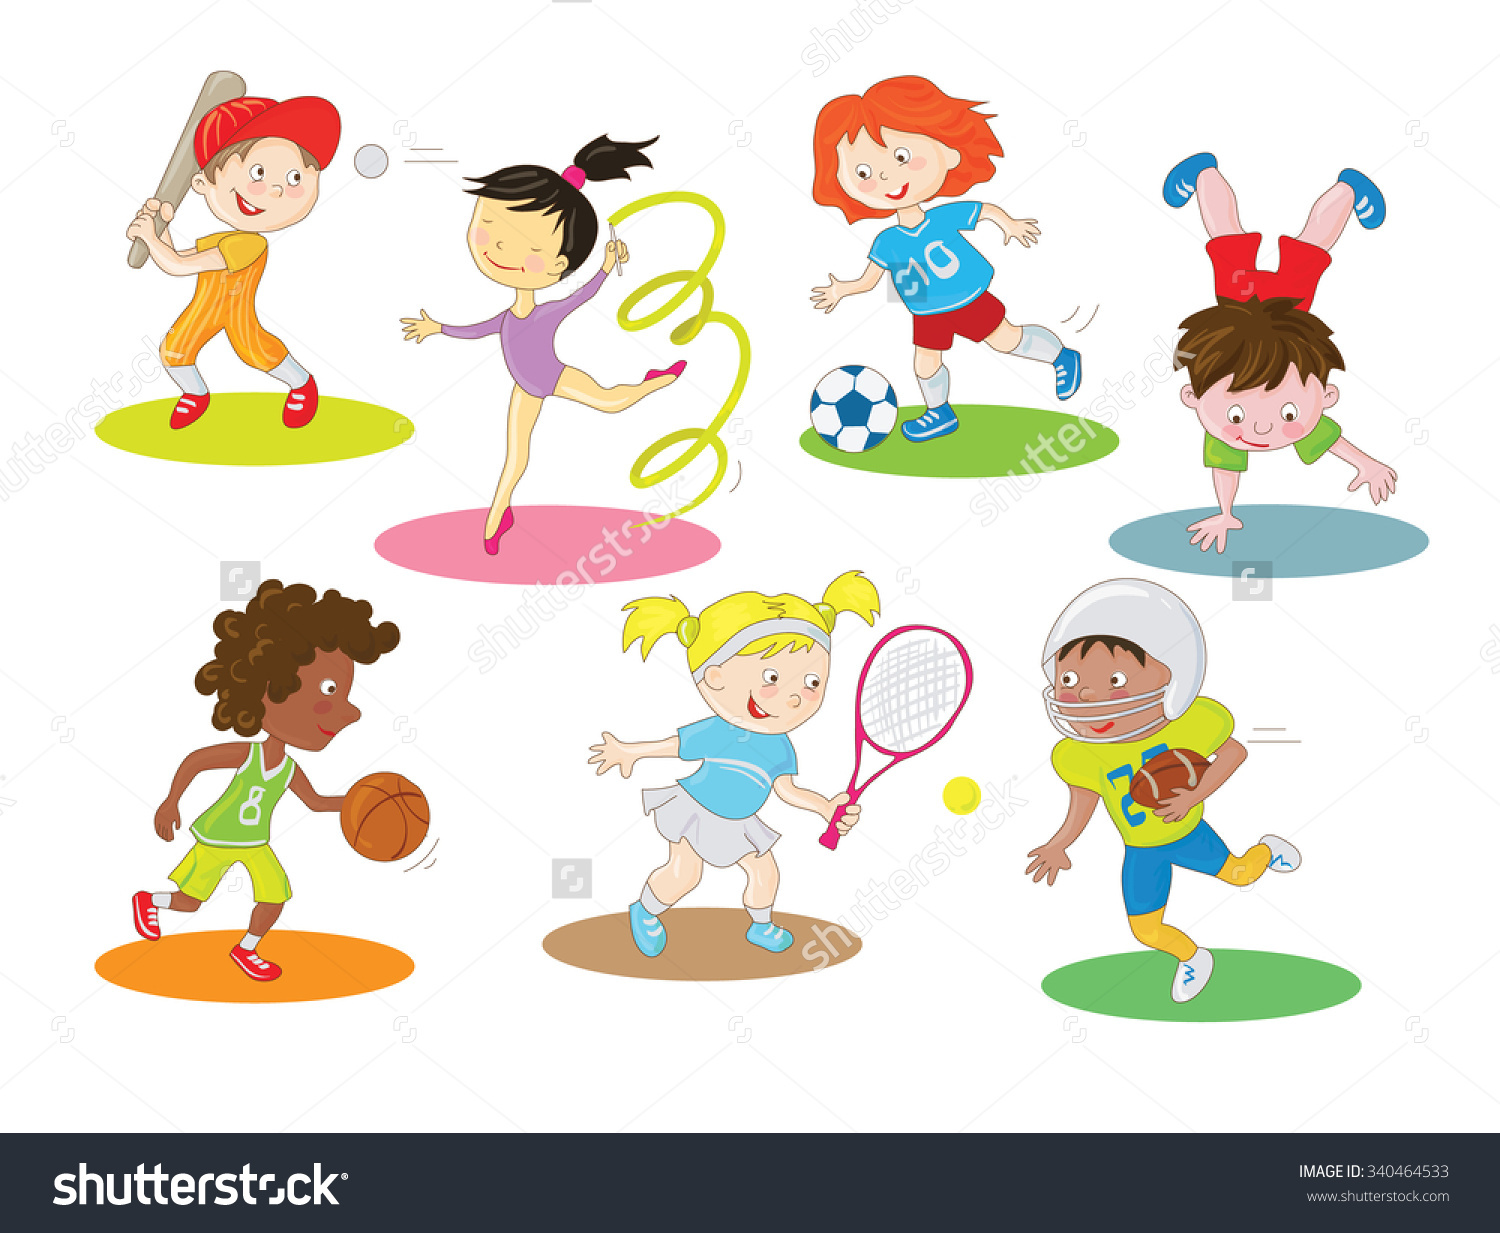 Day time activities for kids clipart.